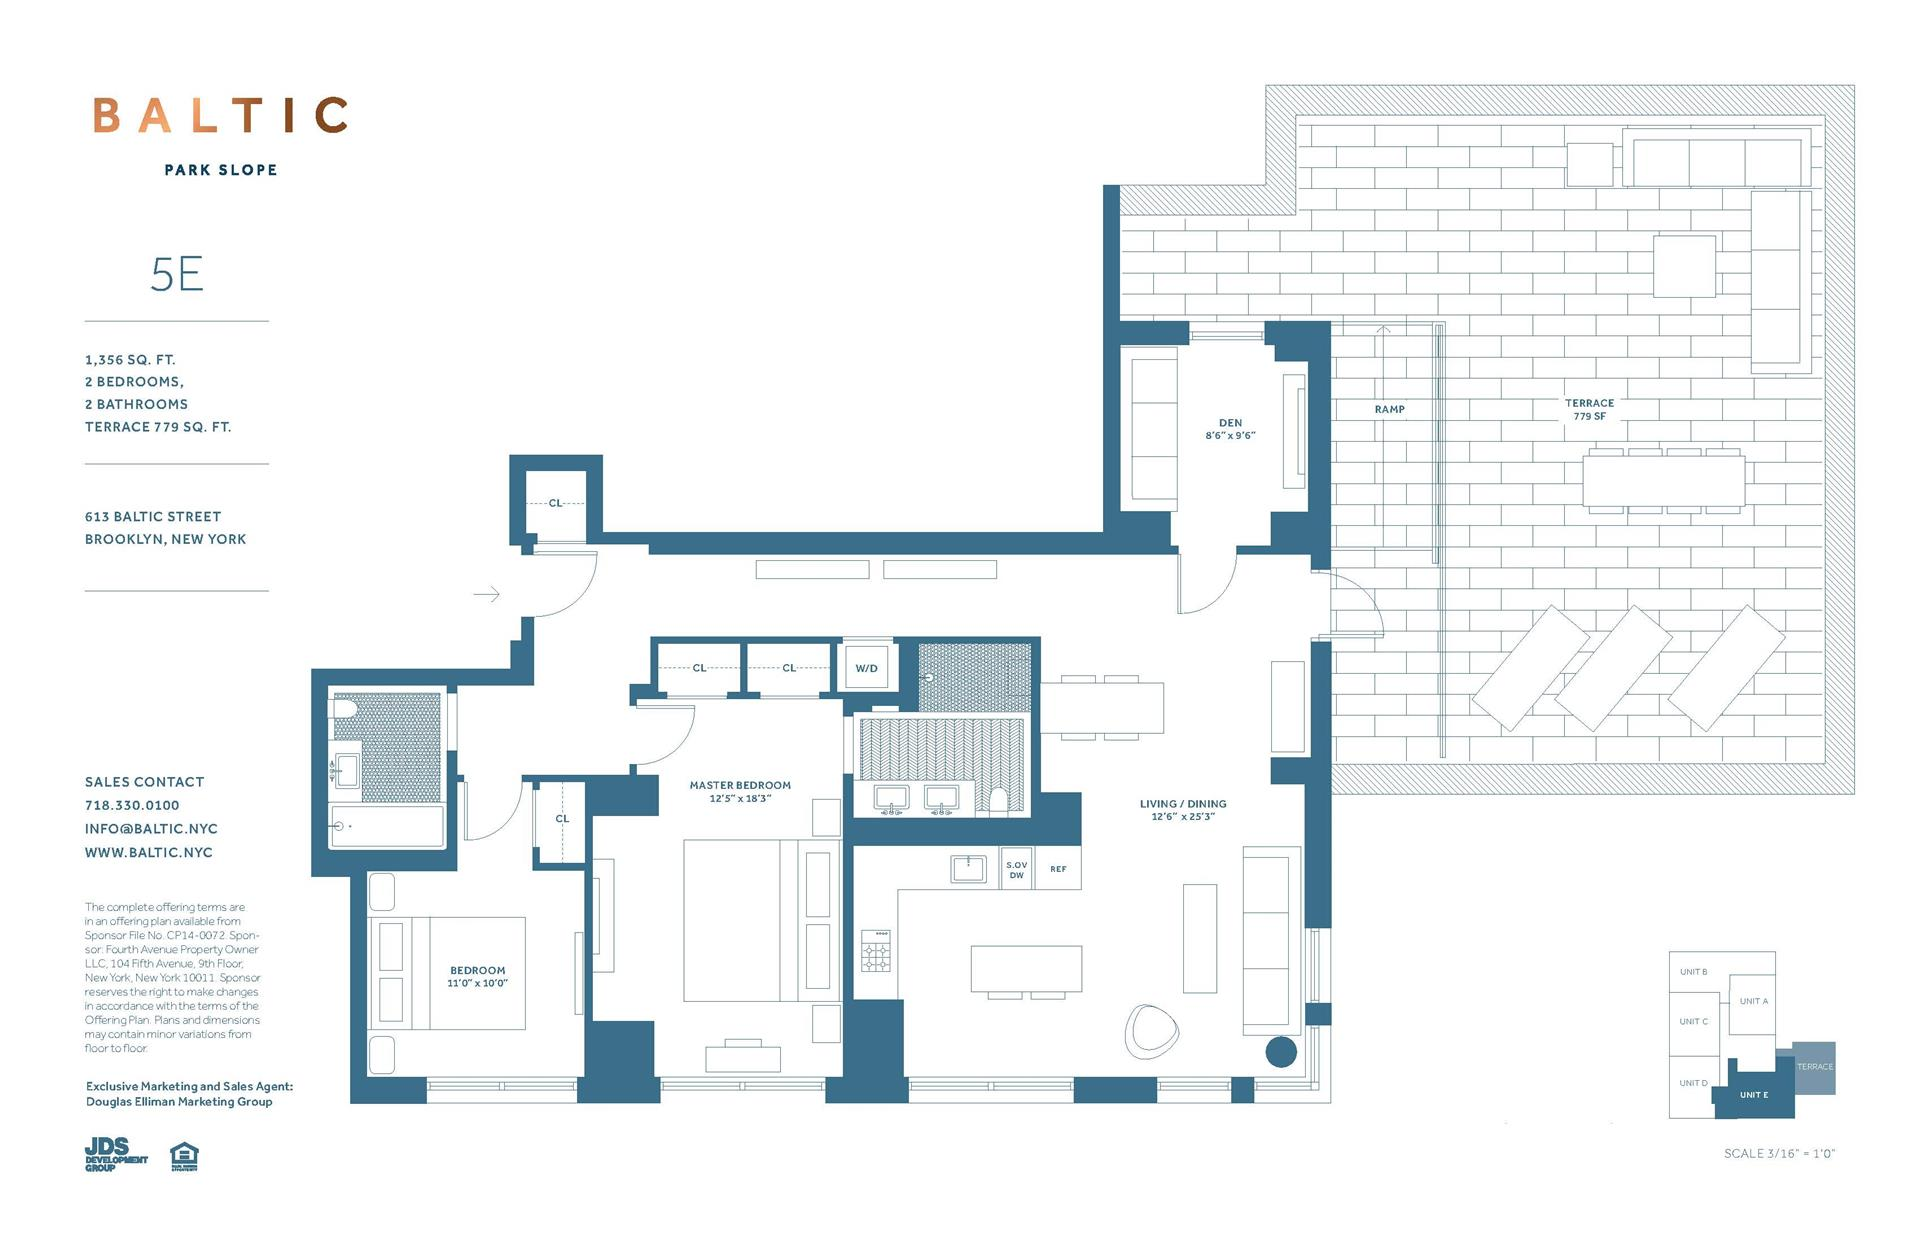 Floor plan of 613 Baltic St, 5E - Park Slope, New York